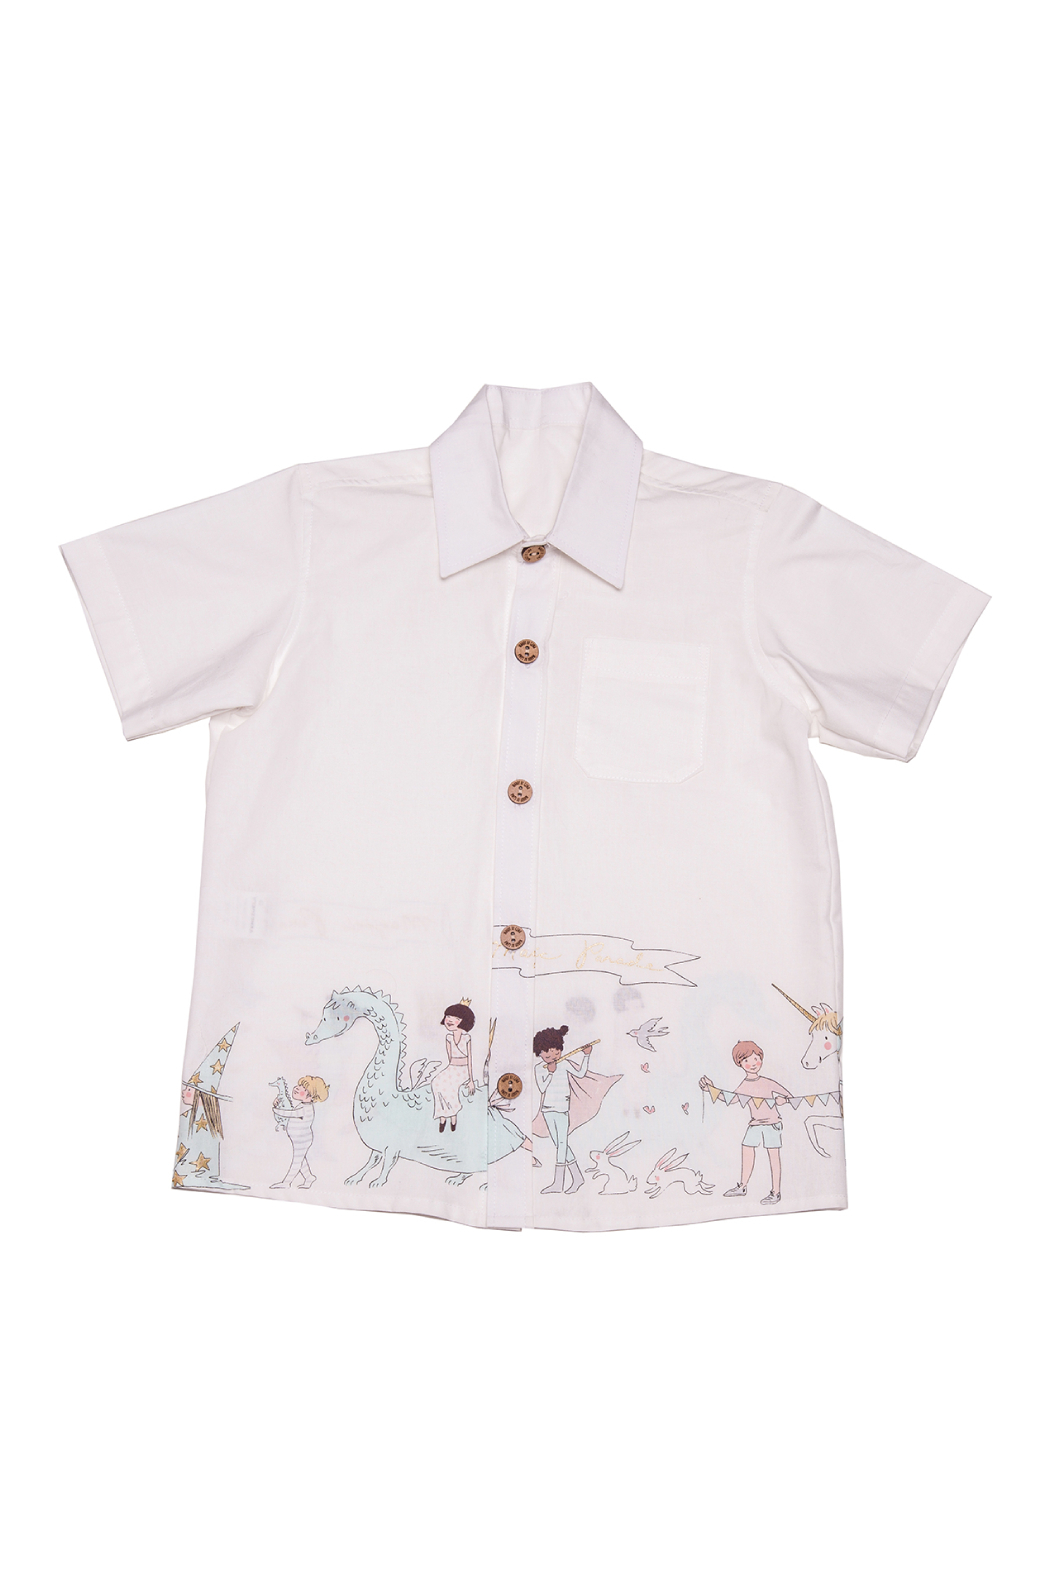 Mandy by Gema Magical Parade White Shirt - Front Cropped Image